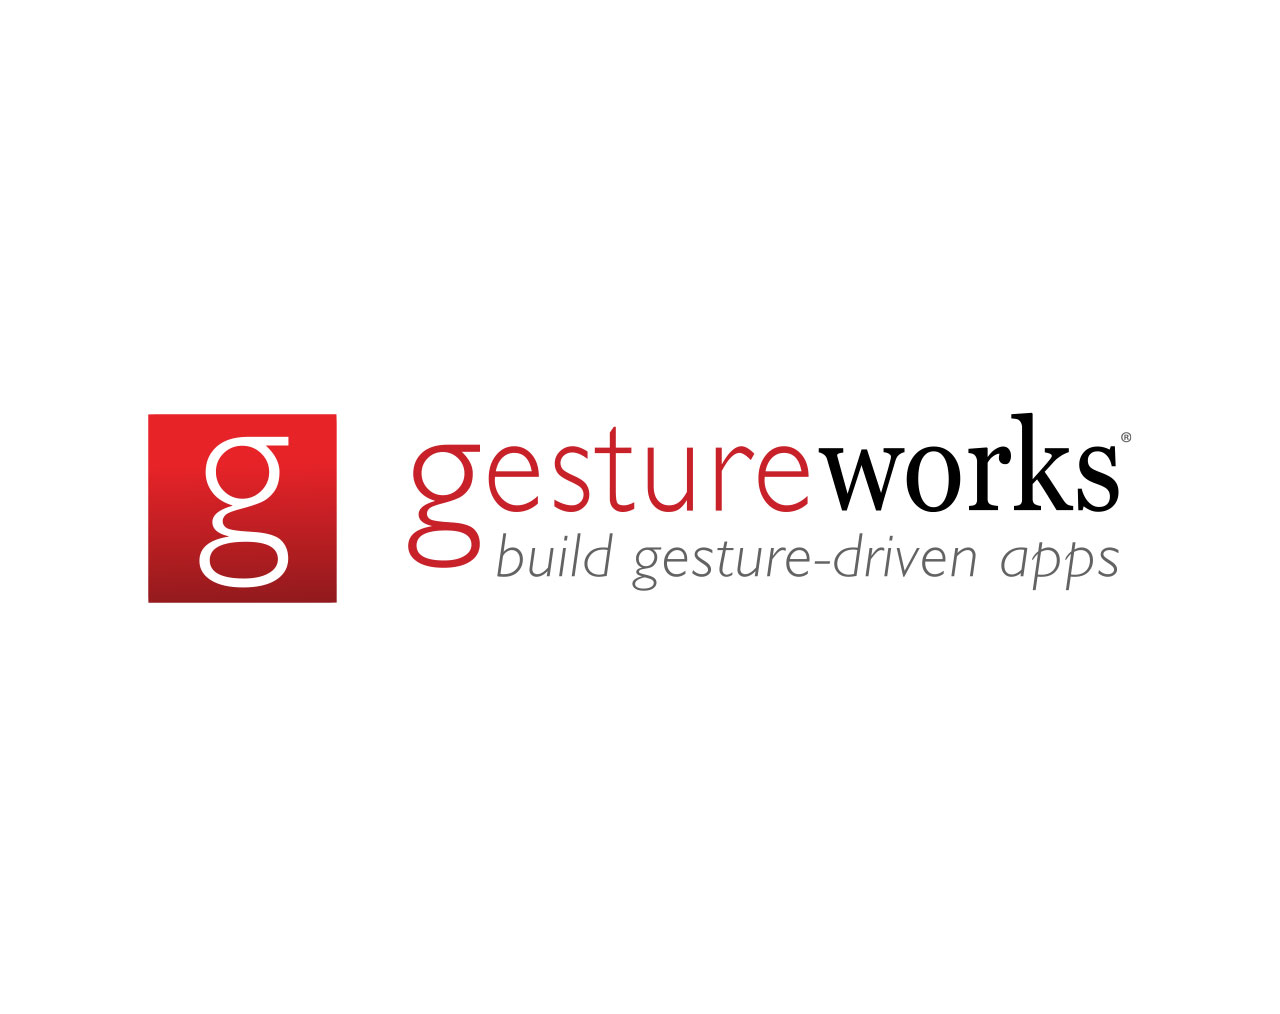 GestureWorks-Built App Featured on Onion News Network